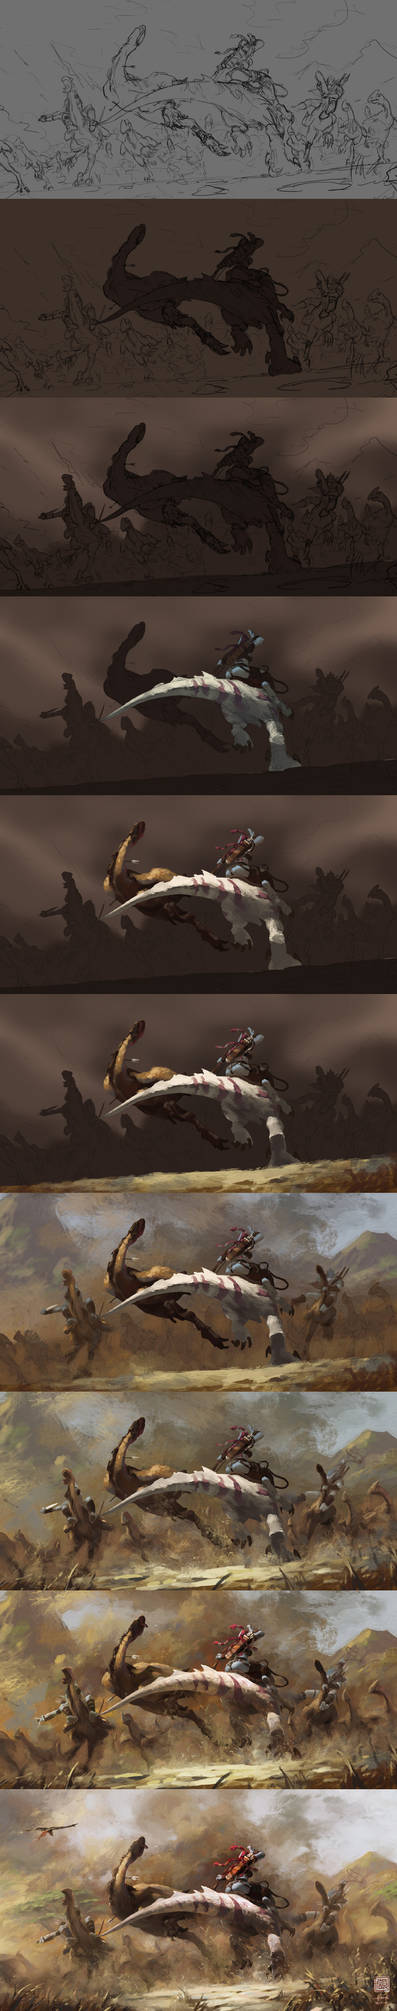 The painting process of Hunting